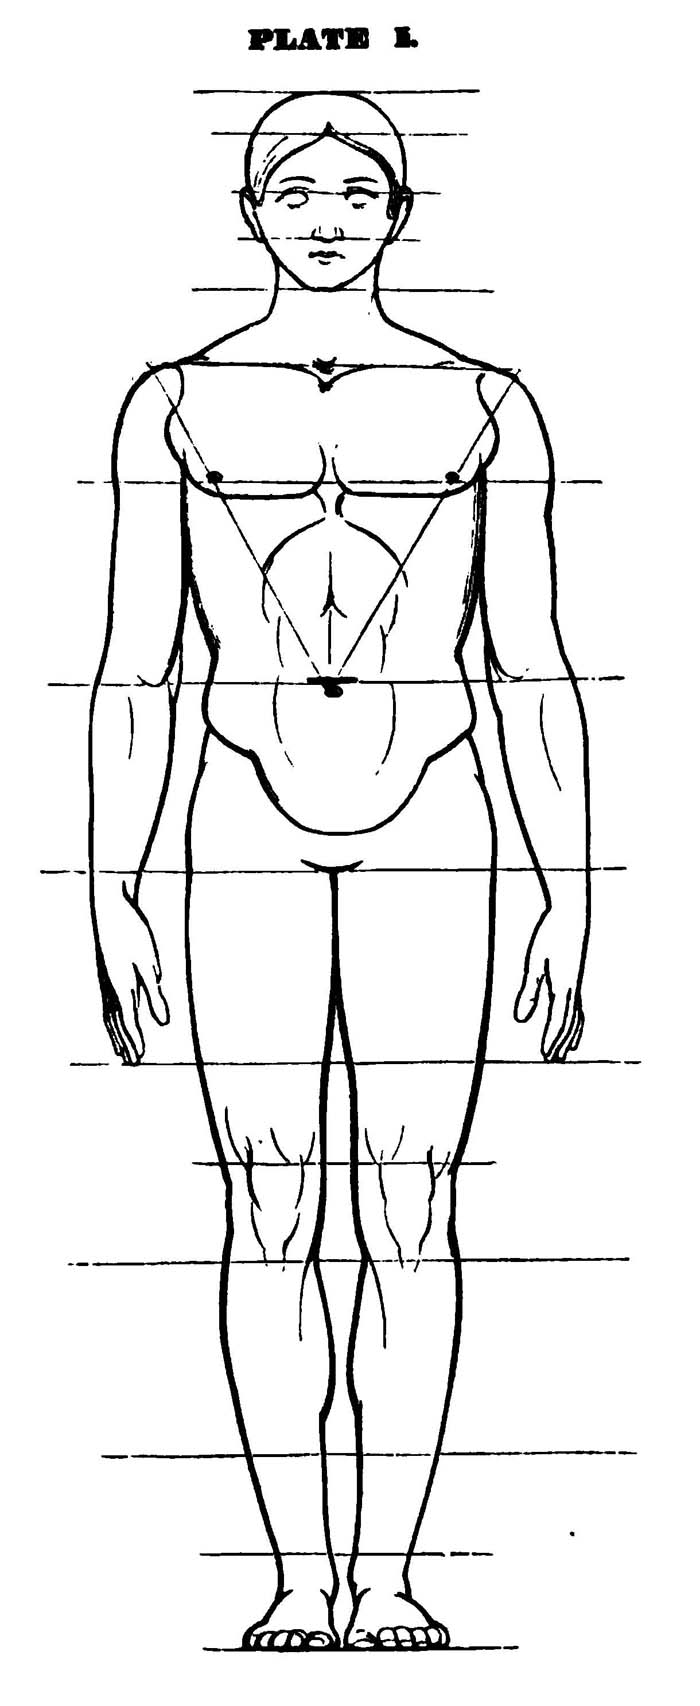 Drawing the Human Head , Face, and Body in the Correct